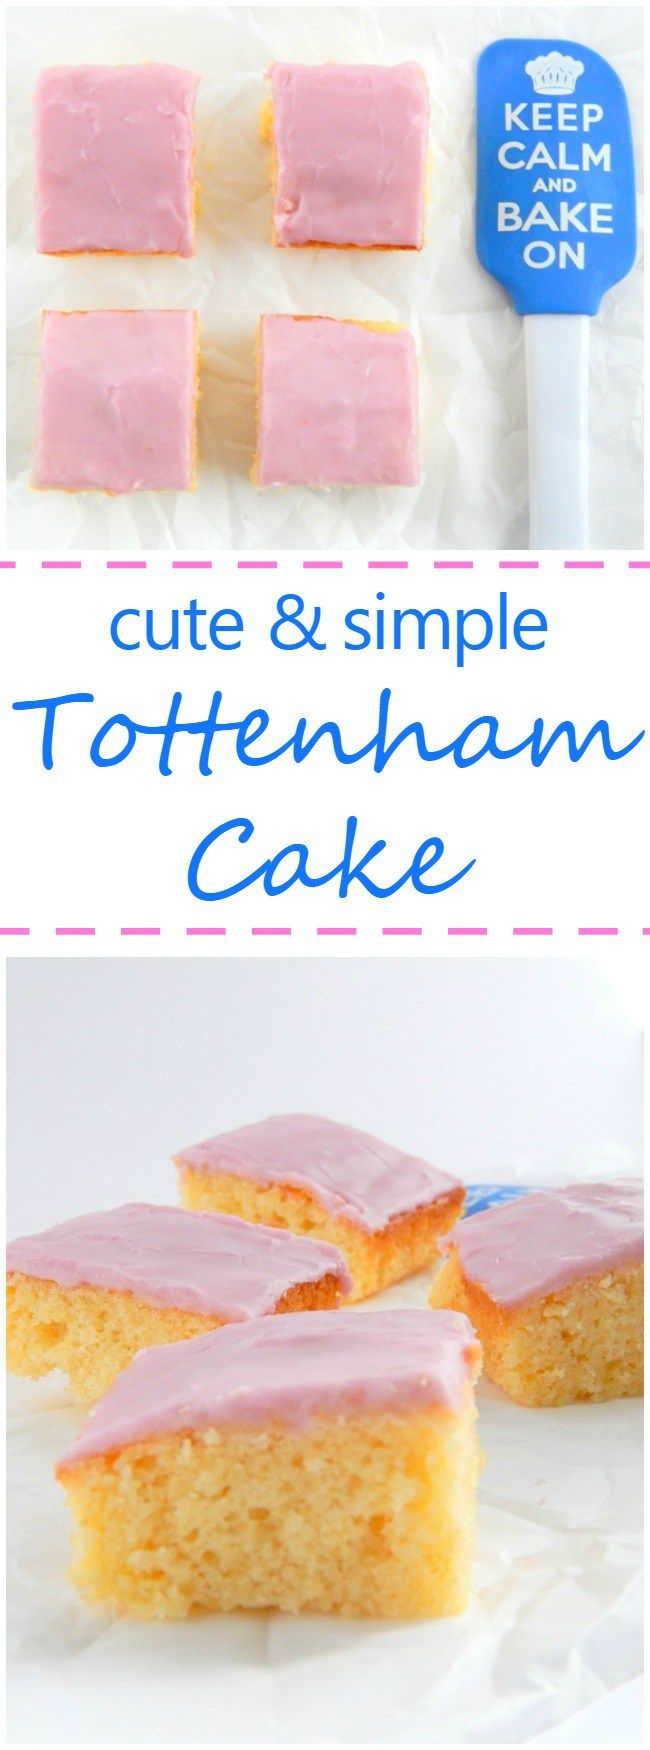 This recipe for Tottenham Cake is simple and super cute! Based on an English recipe made by Quakers it's a great cake for kids, parties, or just for yourself!